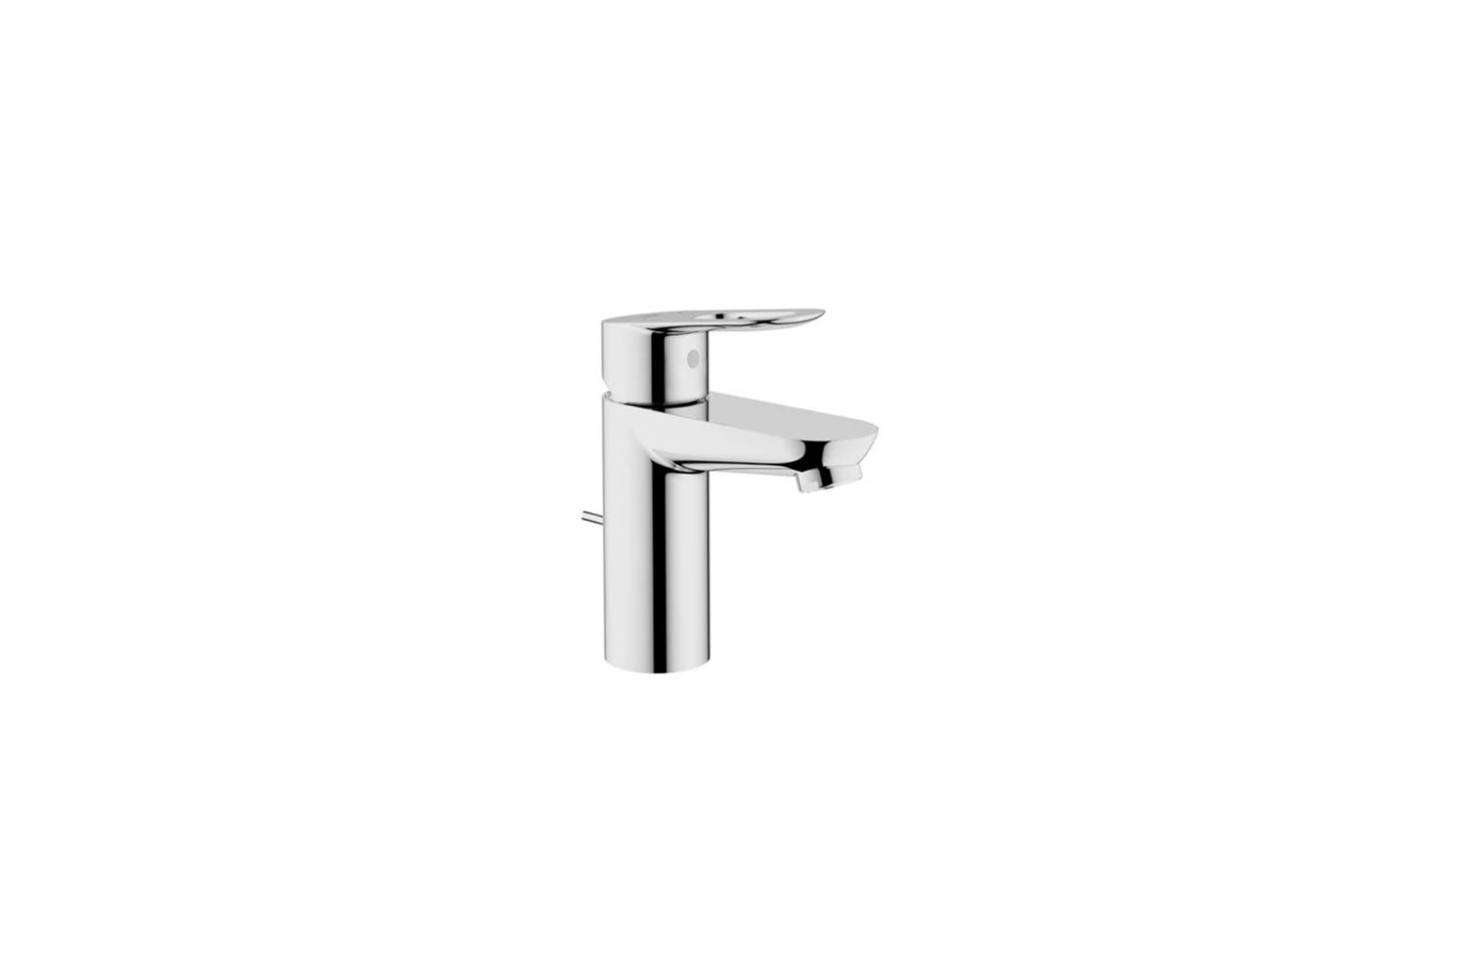 The bathroom sink faucet is the Grohe Starlight Chrome BauLoop Single Hole Bathroom Faucetfor $104.35 at Faucet Direct.